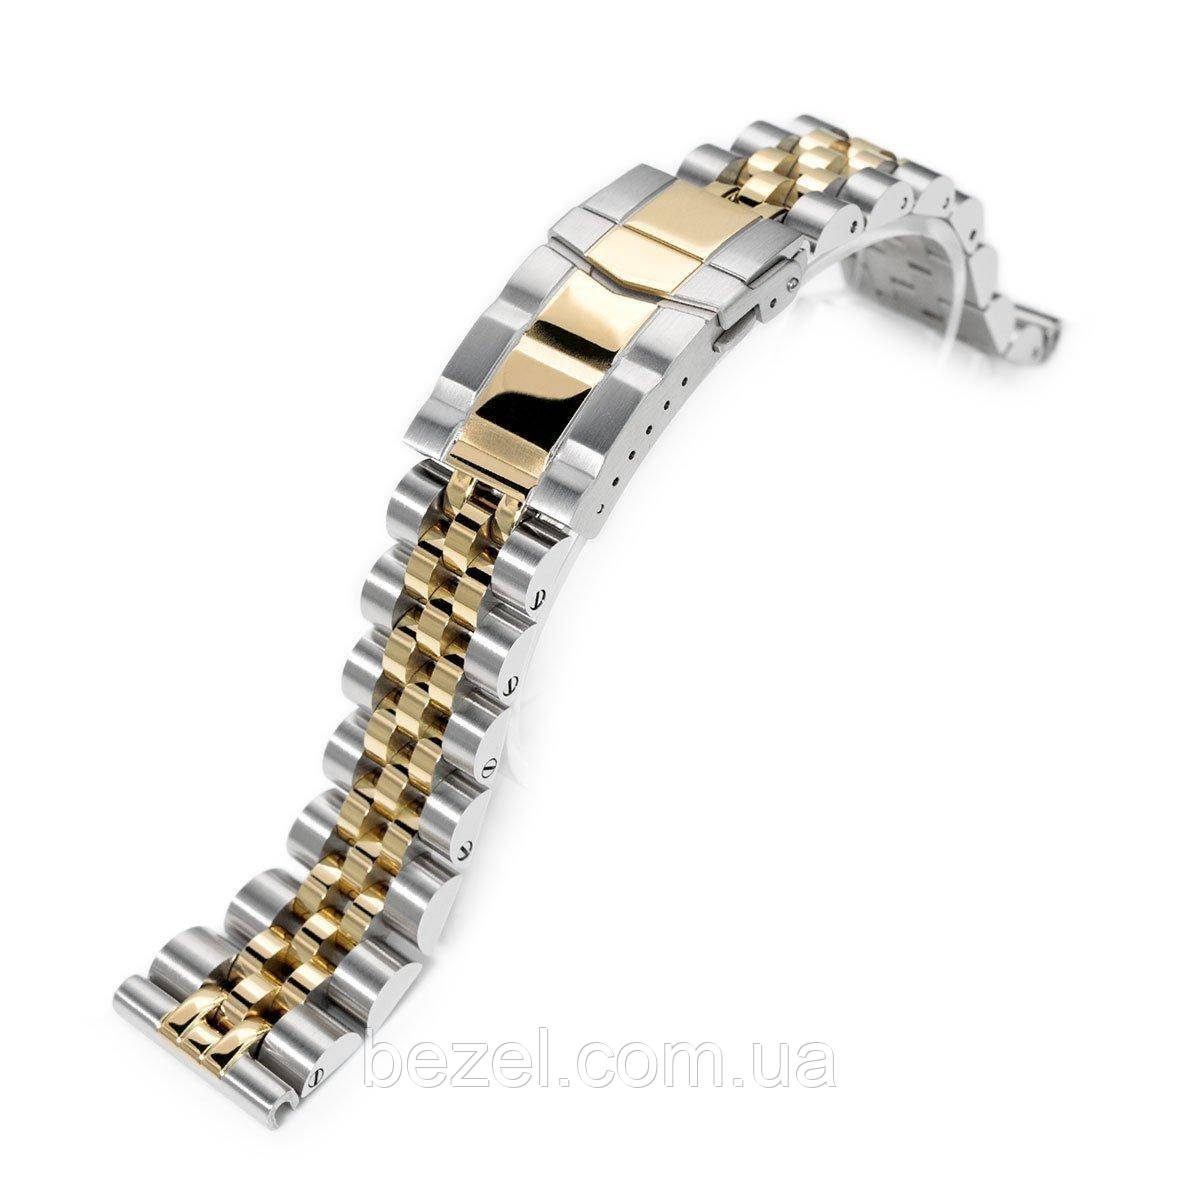 20mm ANGUS Jubilee 316L Stainless Steel Watch Bracelet 20mm Straight End, Two Tone IP Gold, Submariner Clasp